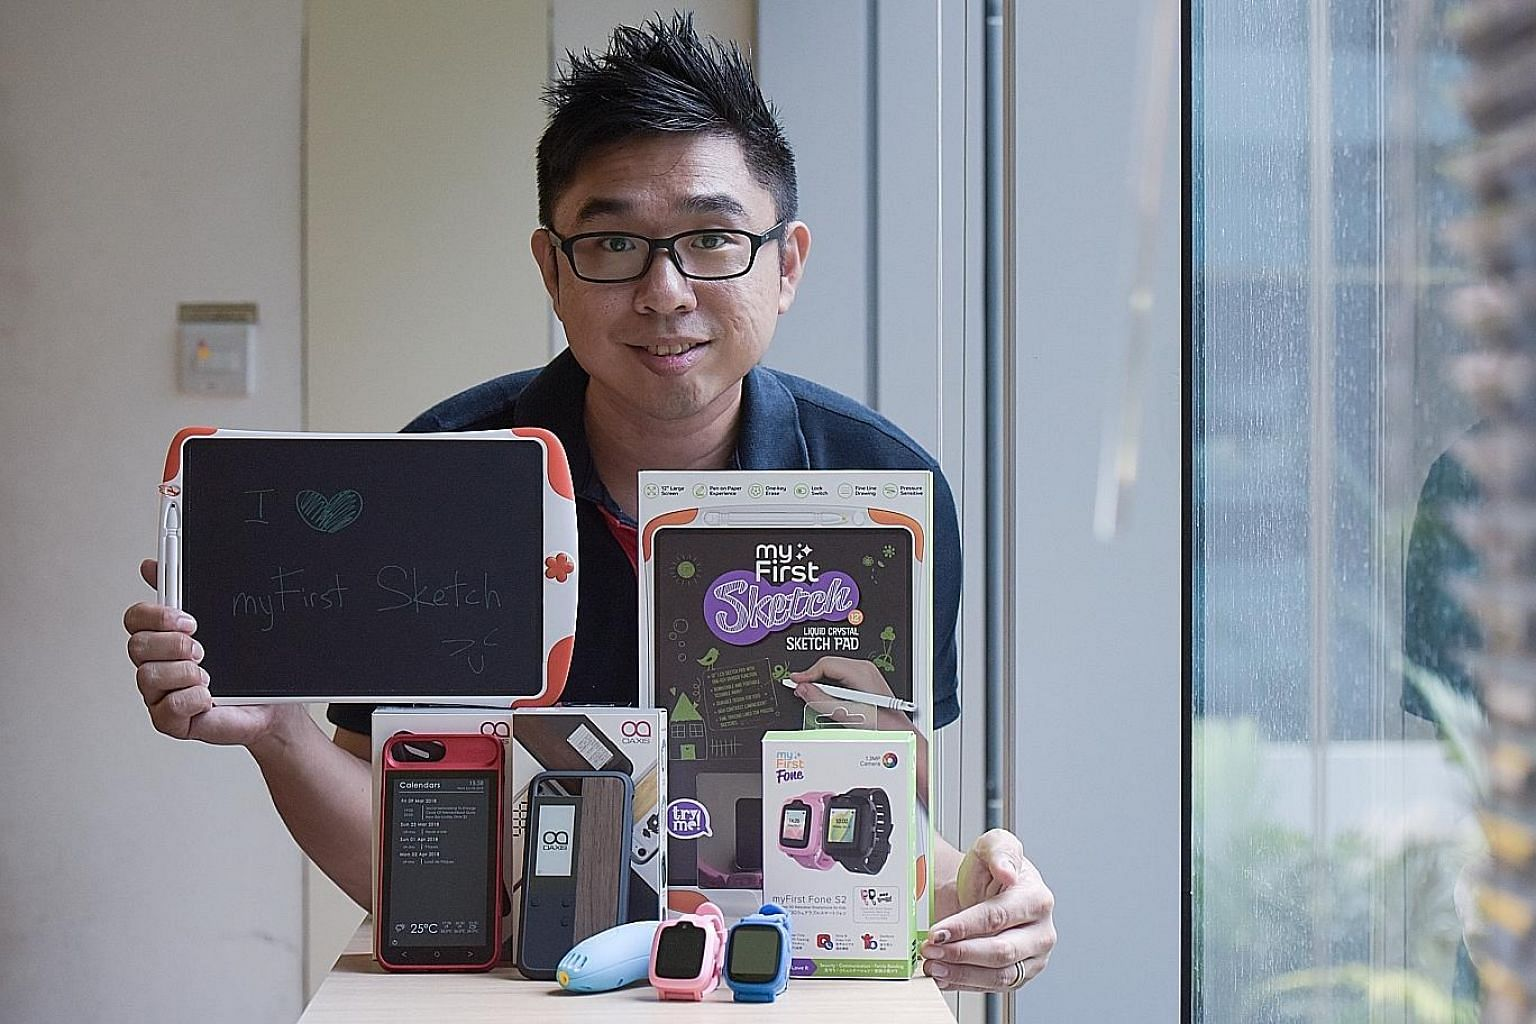 Oaxis chief executive and co-founder G-Jay Yong with the company's range of products, which include the WatchPhone S1 and its follow-up myFirst Fone S2 for children, as well as an E Ink screen for hospitals that displays queue numbers and patients' b